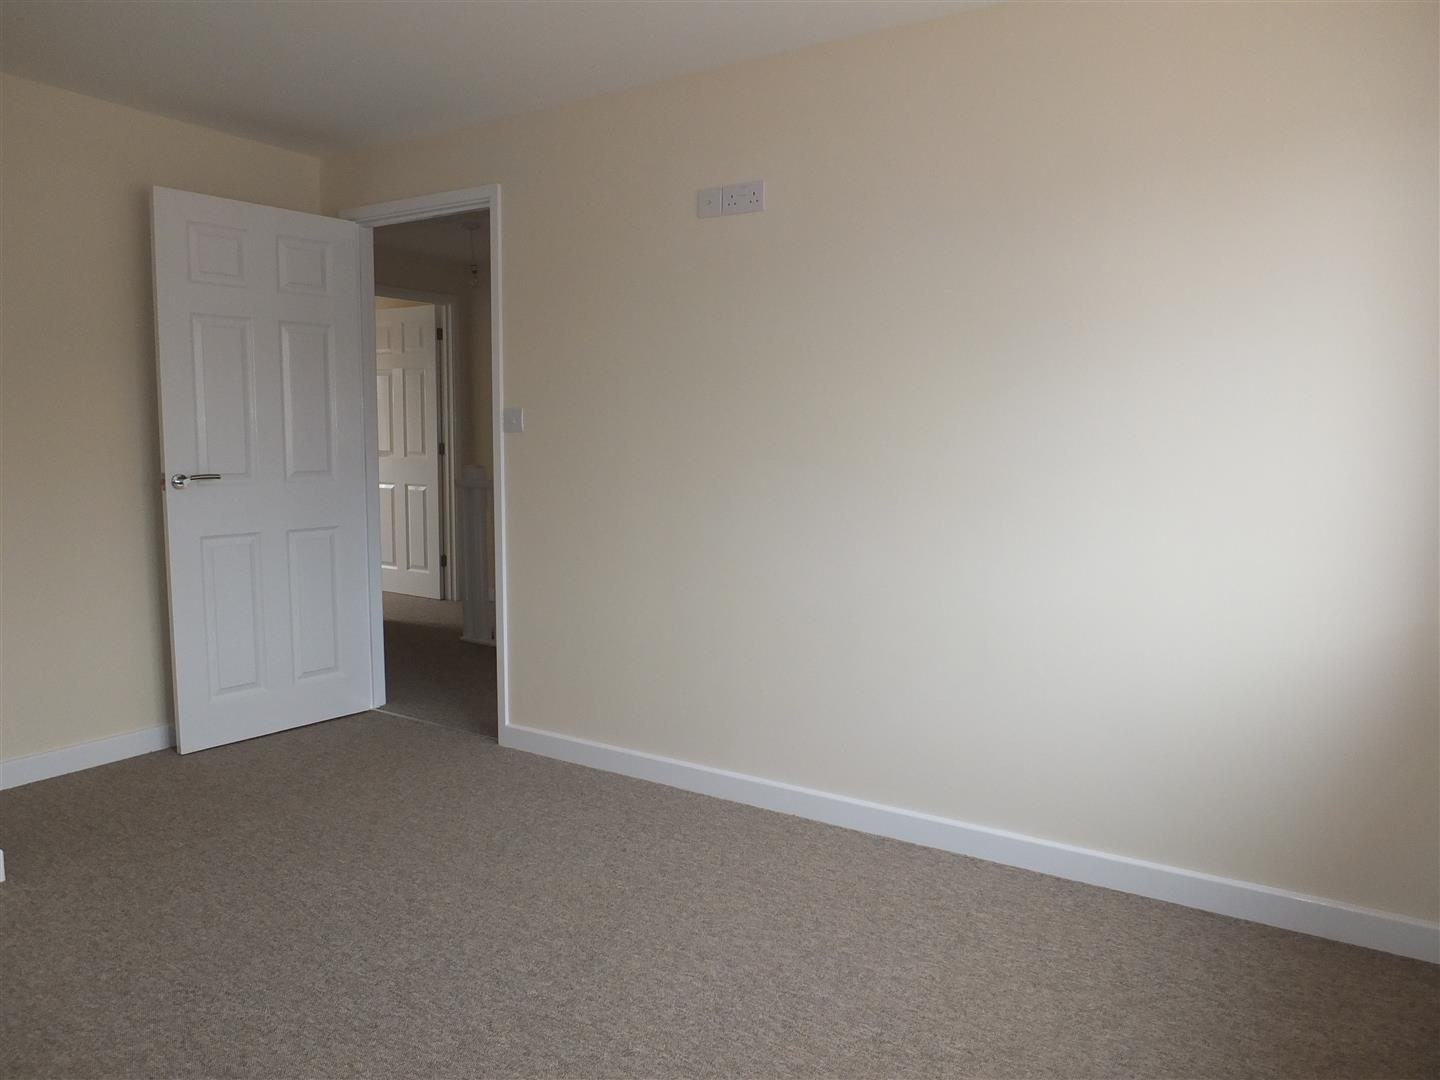 3 bed house to rent in Little London, Long Sutton  - Property Image 6